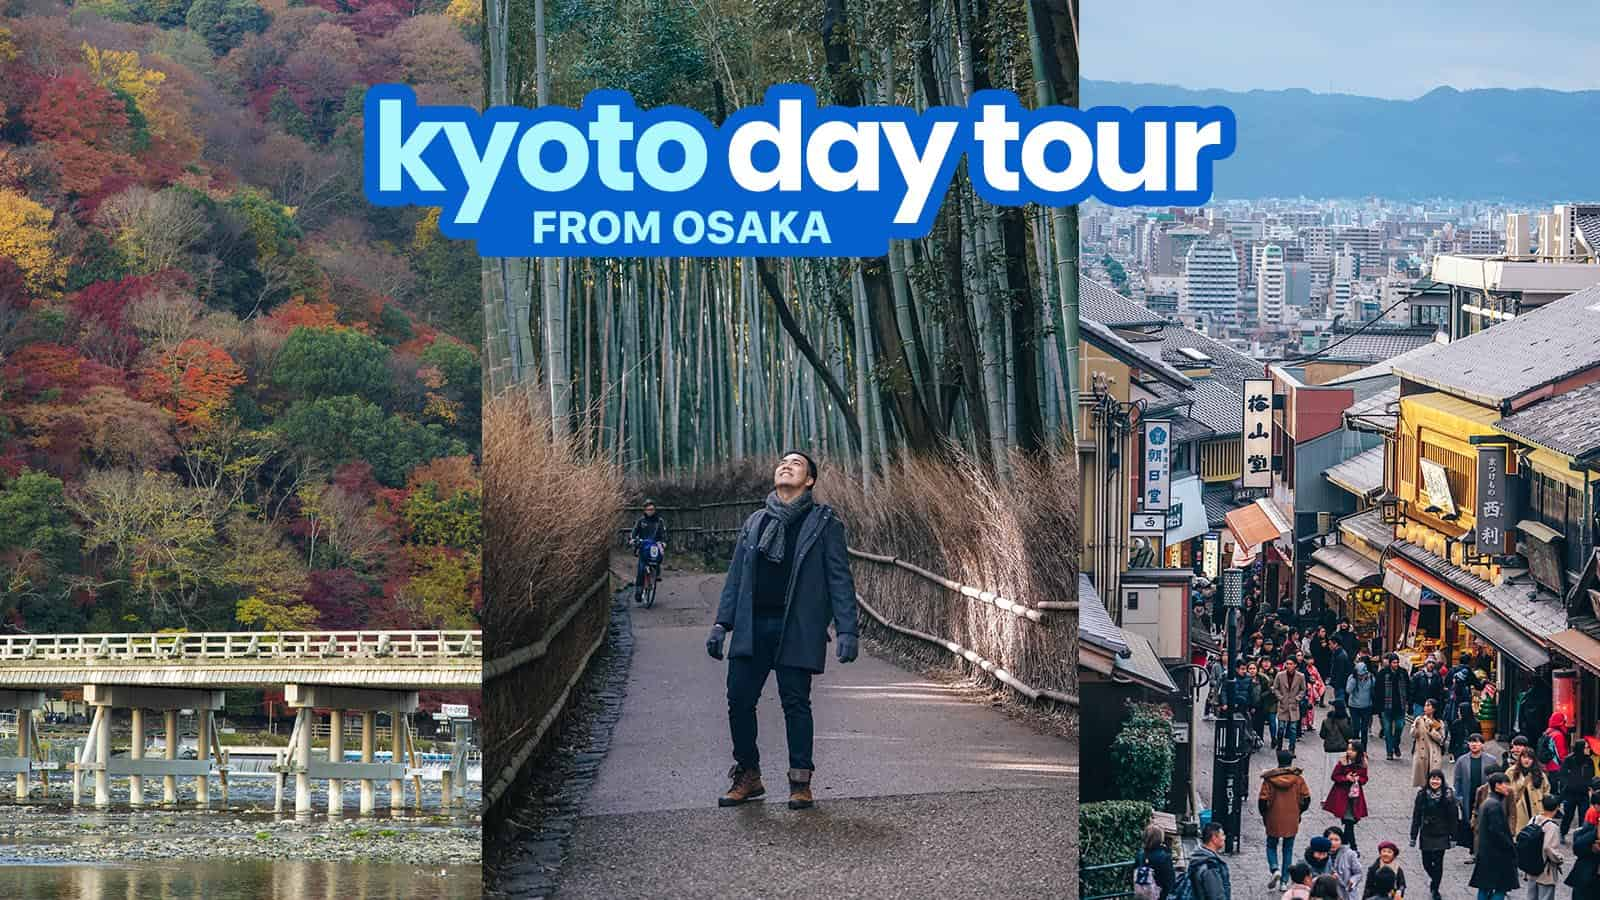 a01afd8ca0fa KYOTO DAY TOUR FROM OSAKA  A DIY ITINERARY